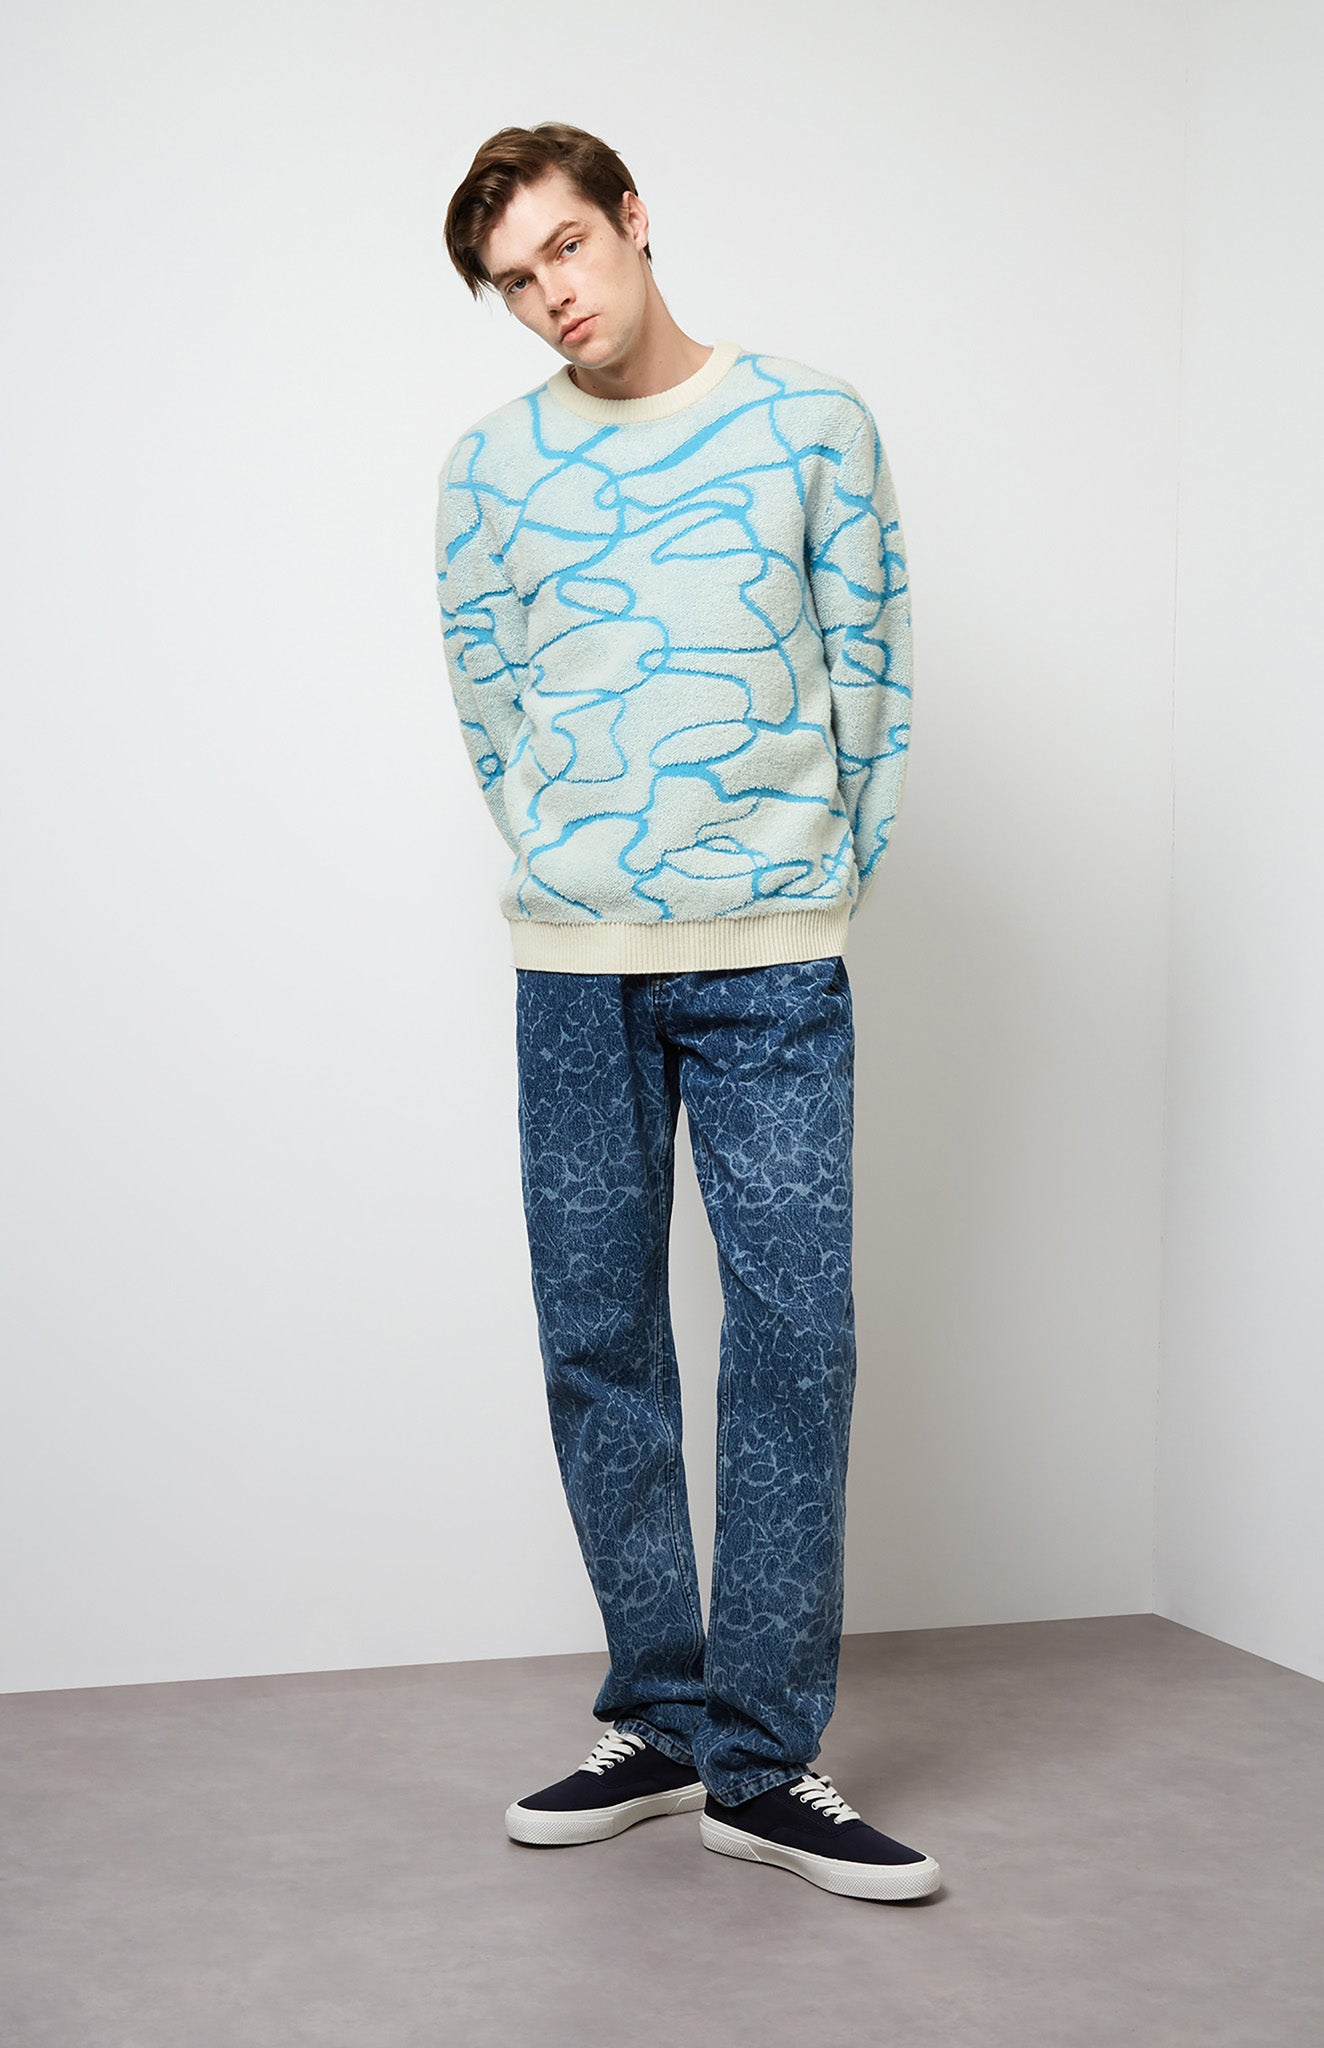 Reflections Jumper In Pool Blue